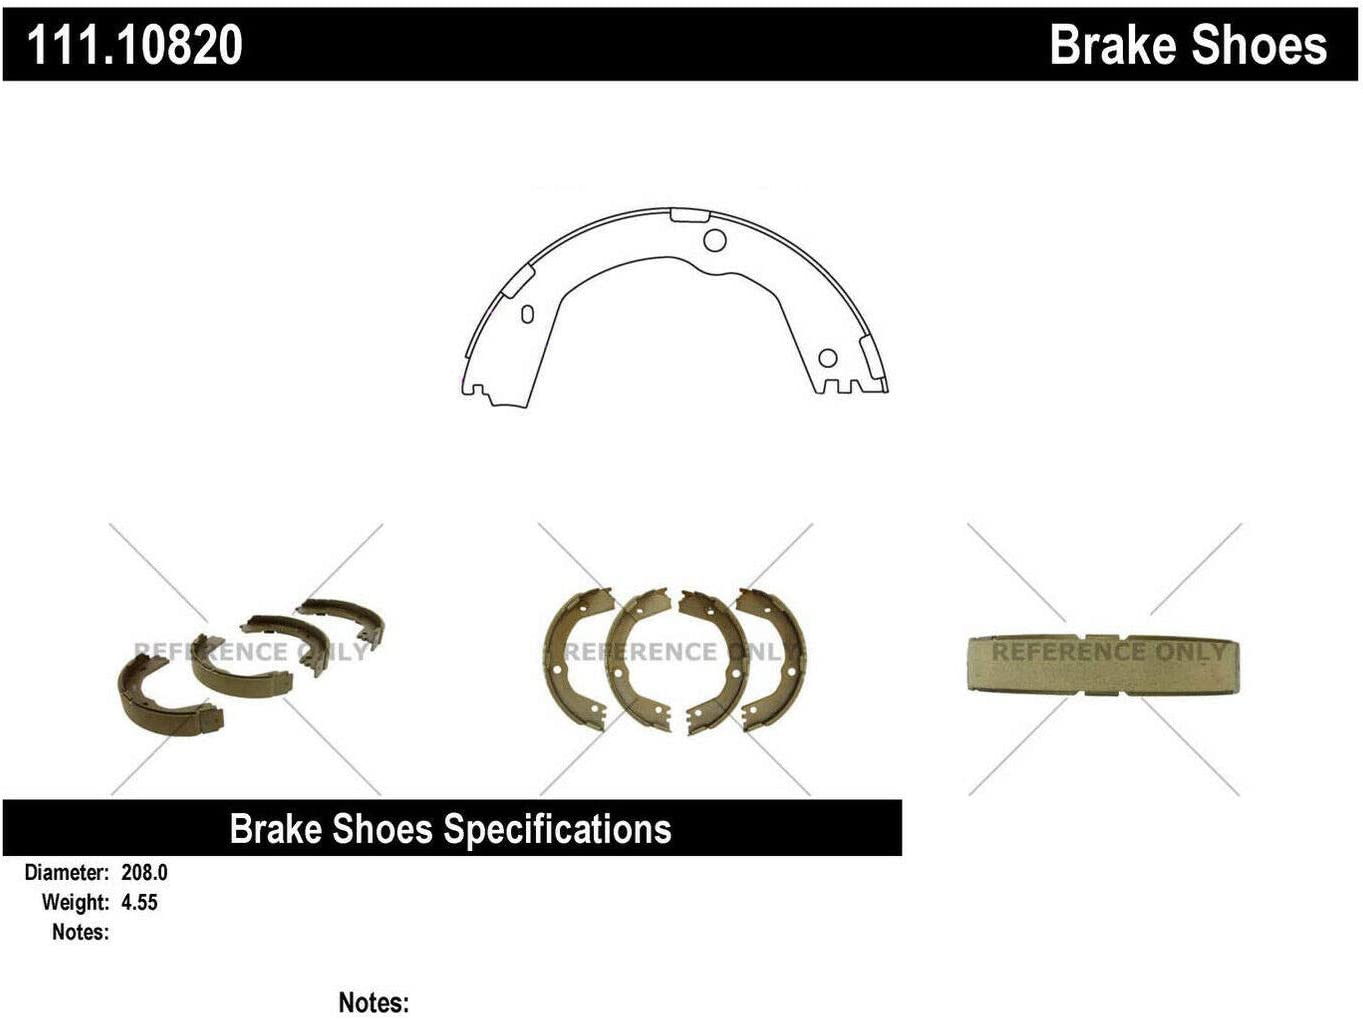 Centric 111.10820 Centric Brake Shoes